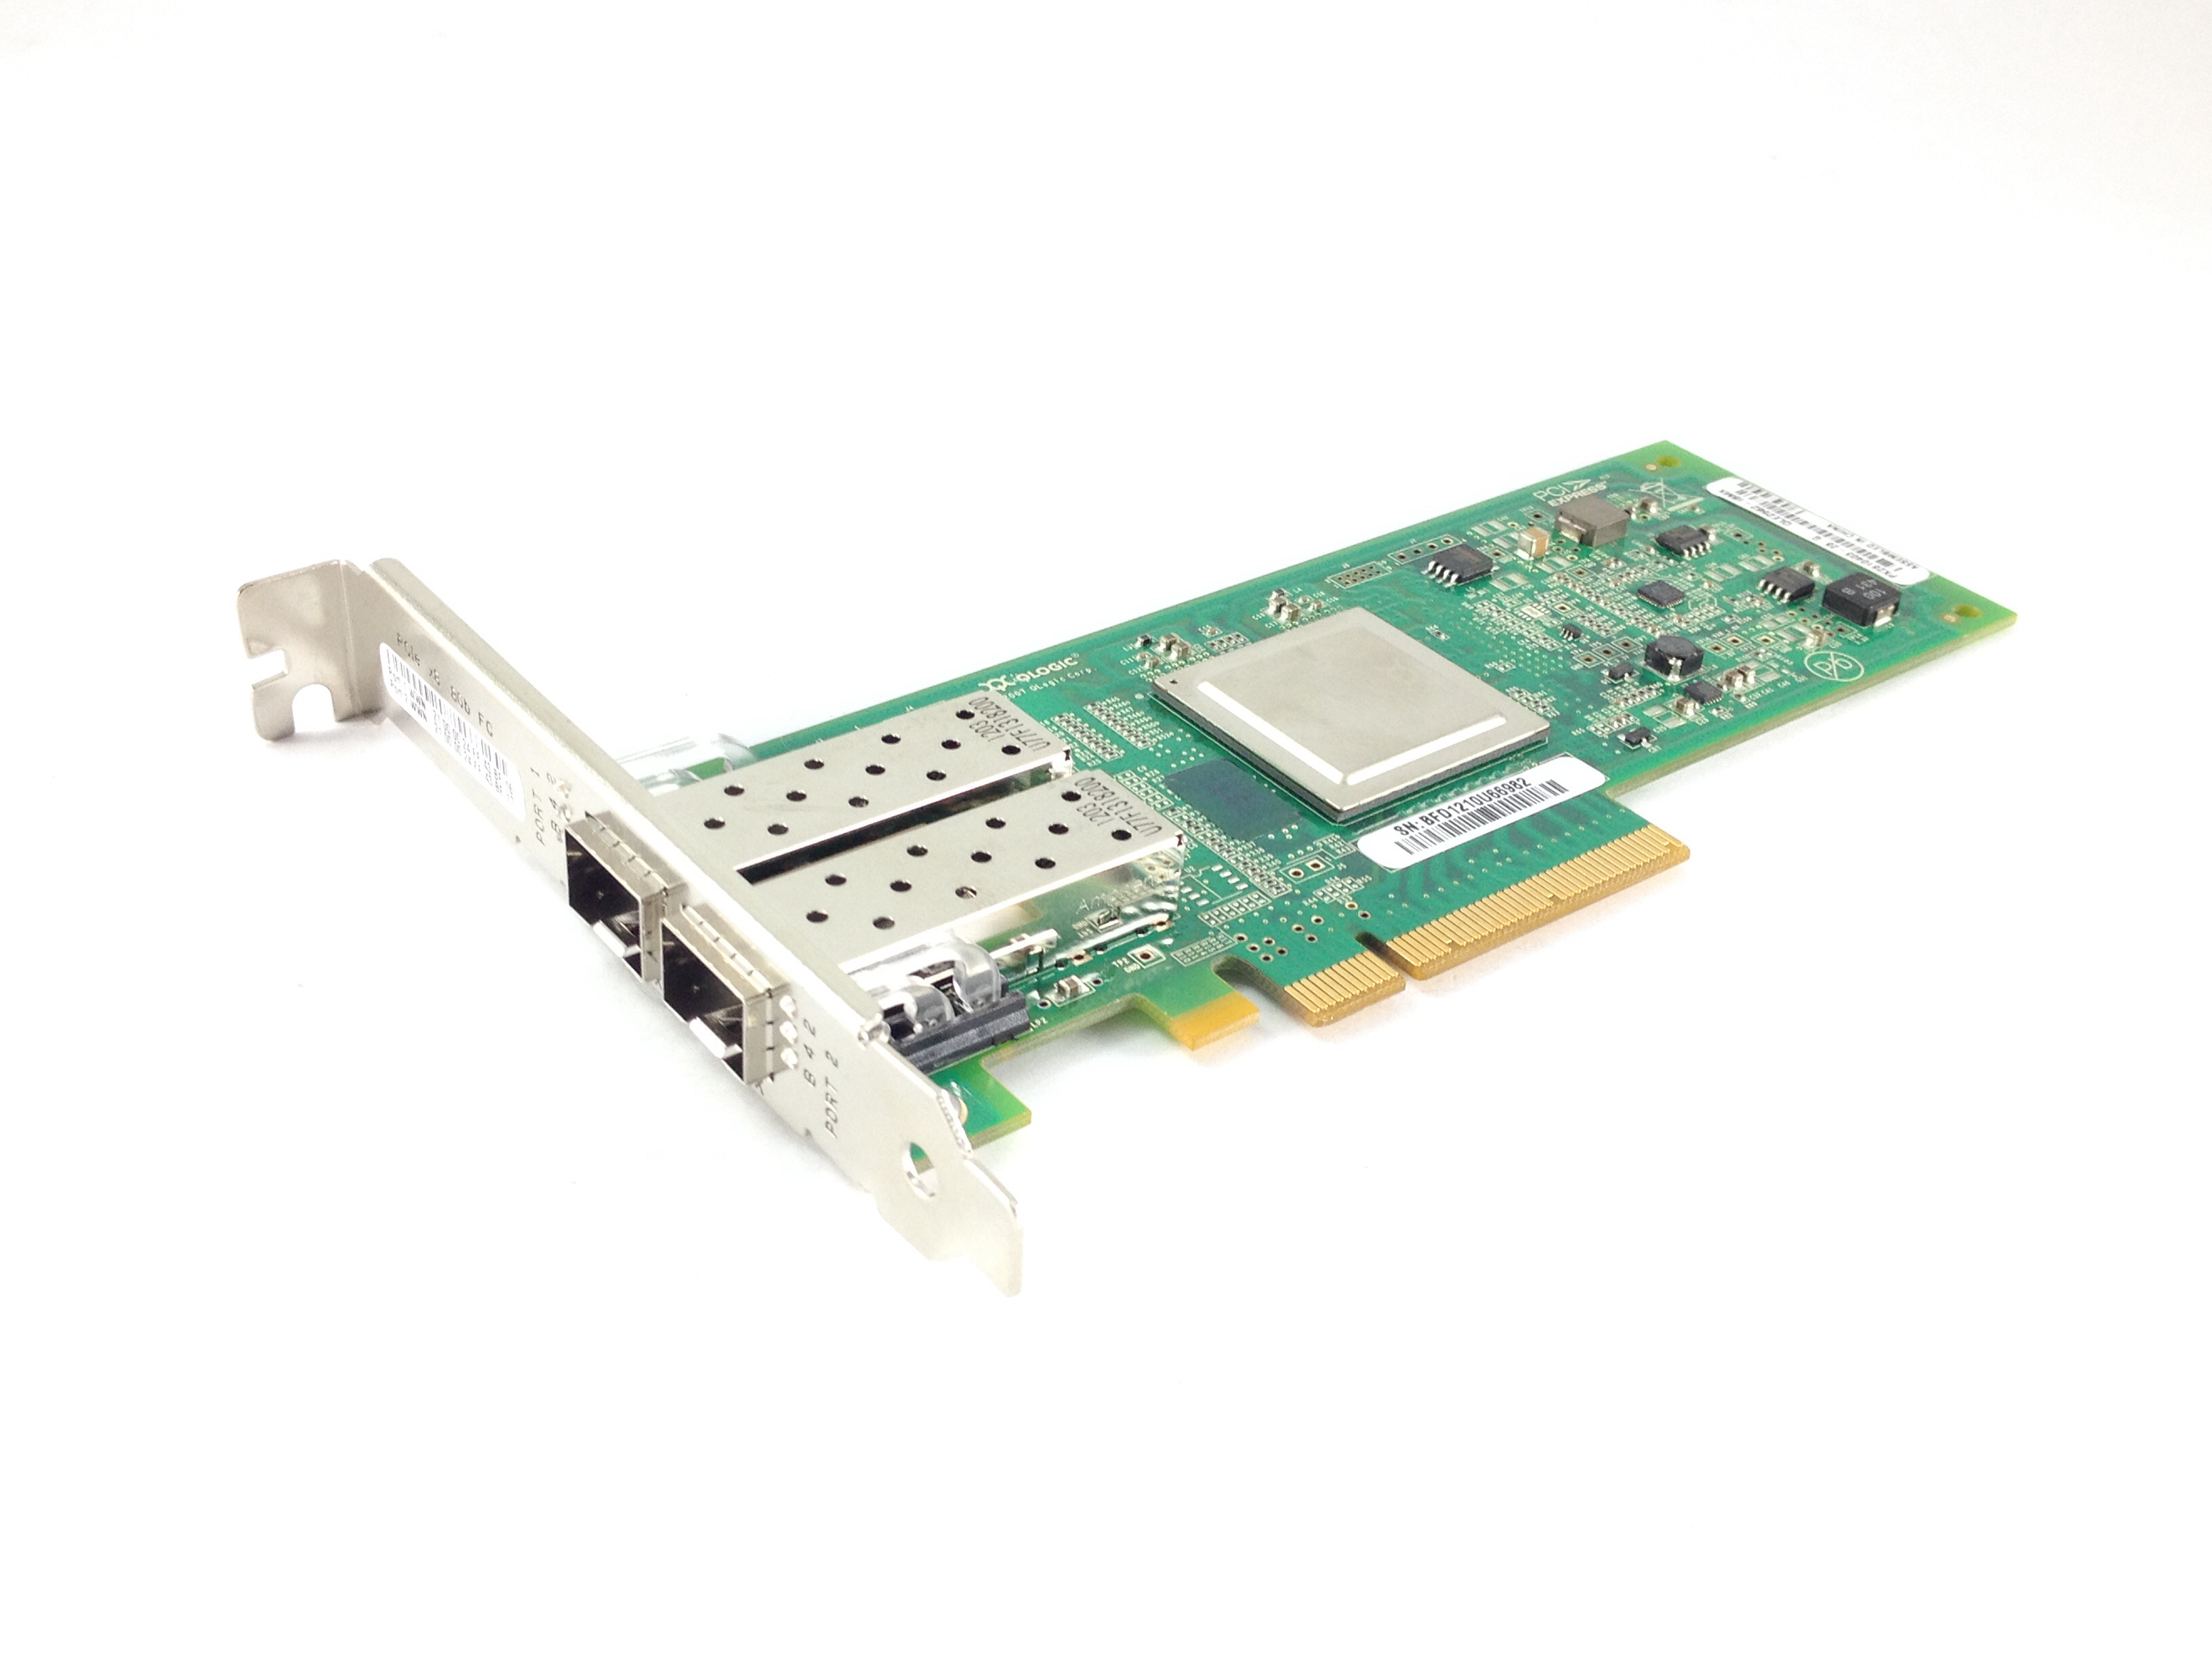 IBM QLOGIC QLE2562-IBMX 8GB DUAL-PORT PCI-E FC HBA (42D0516)